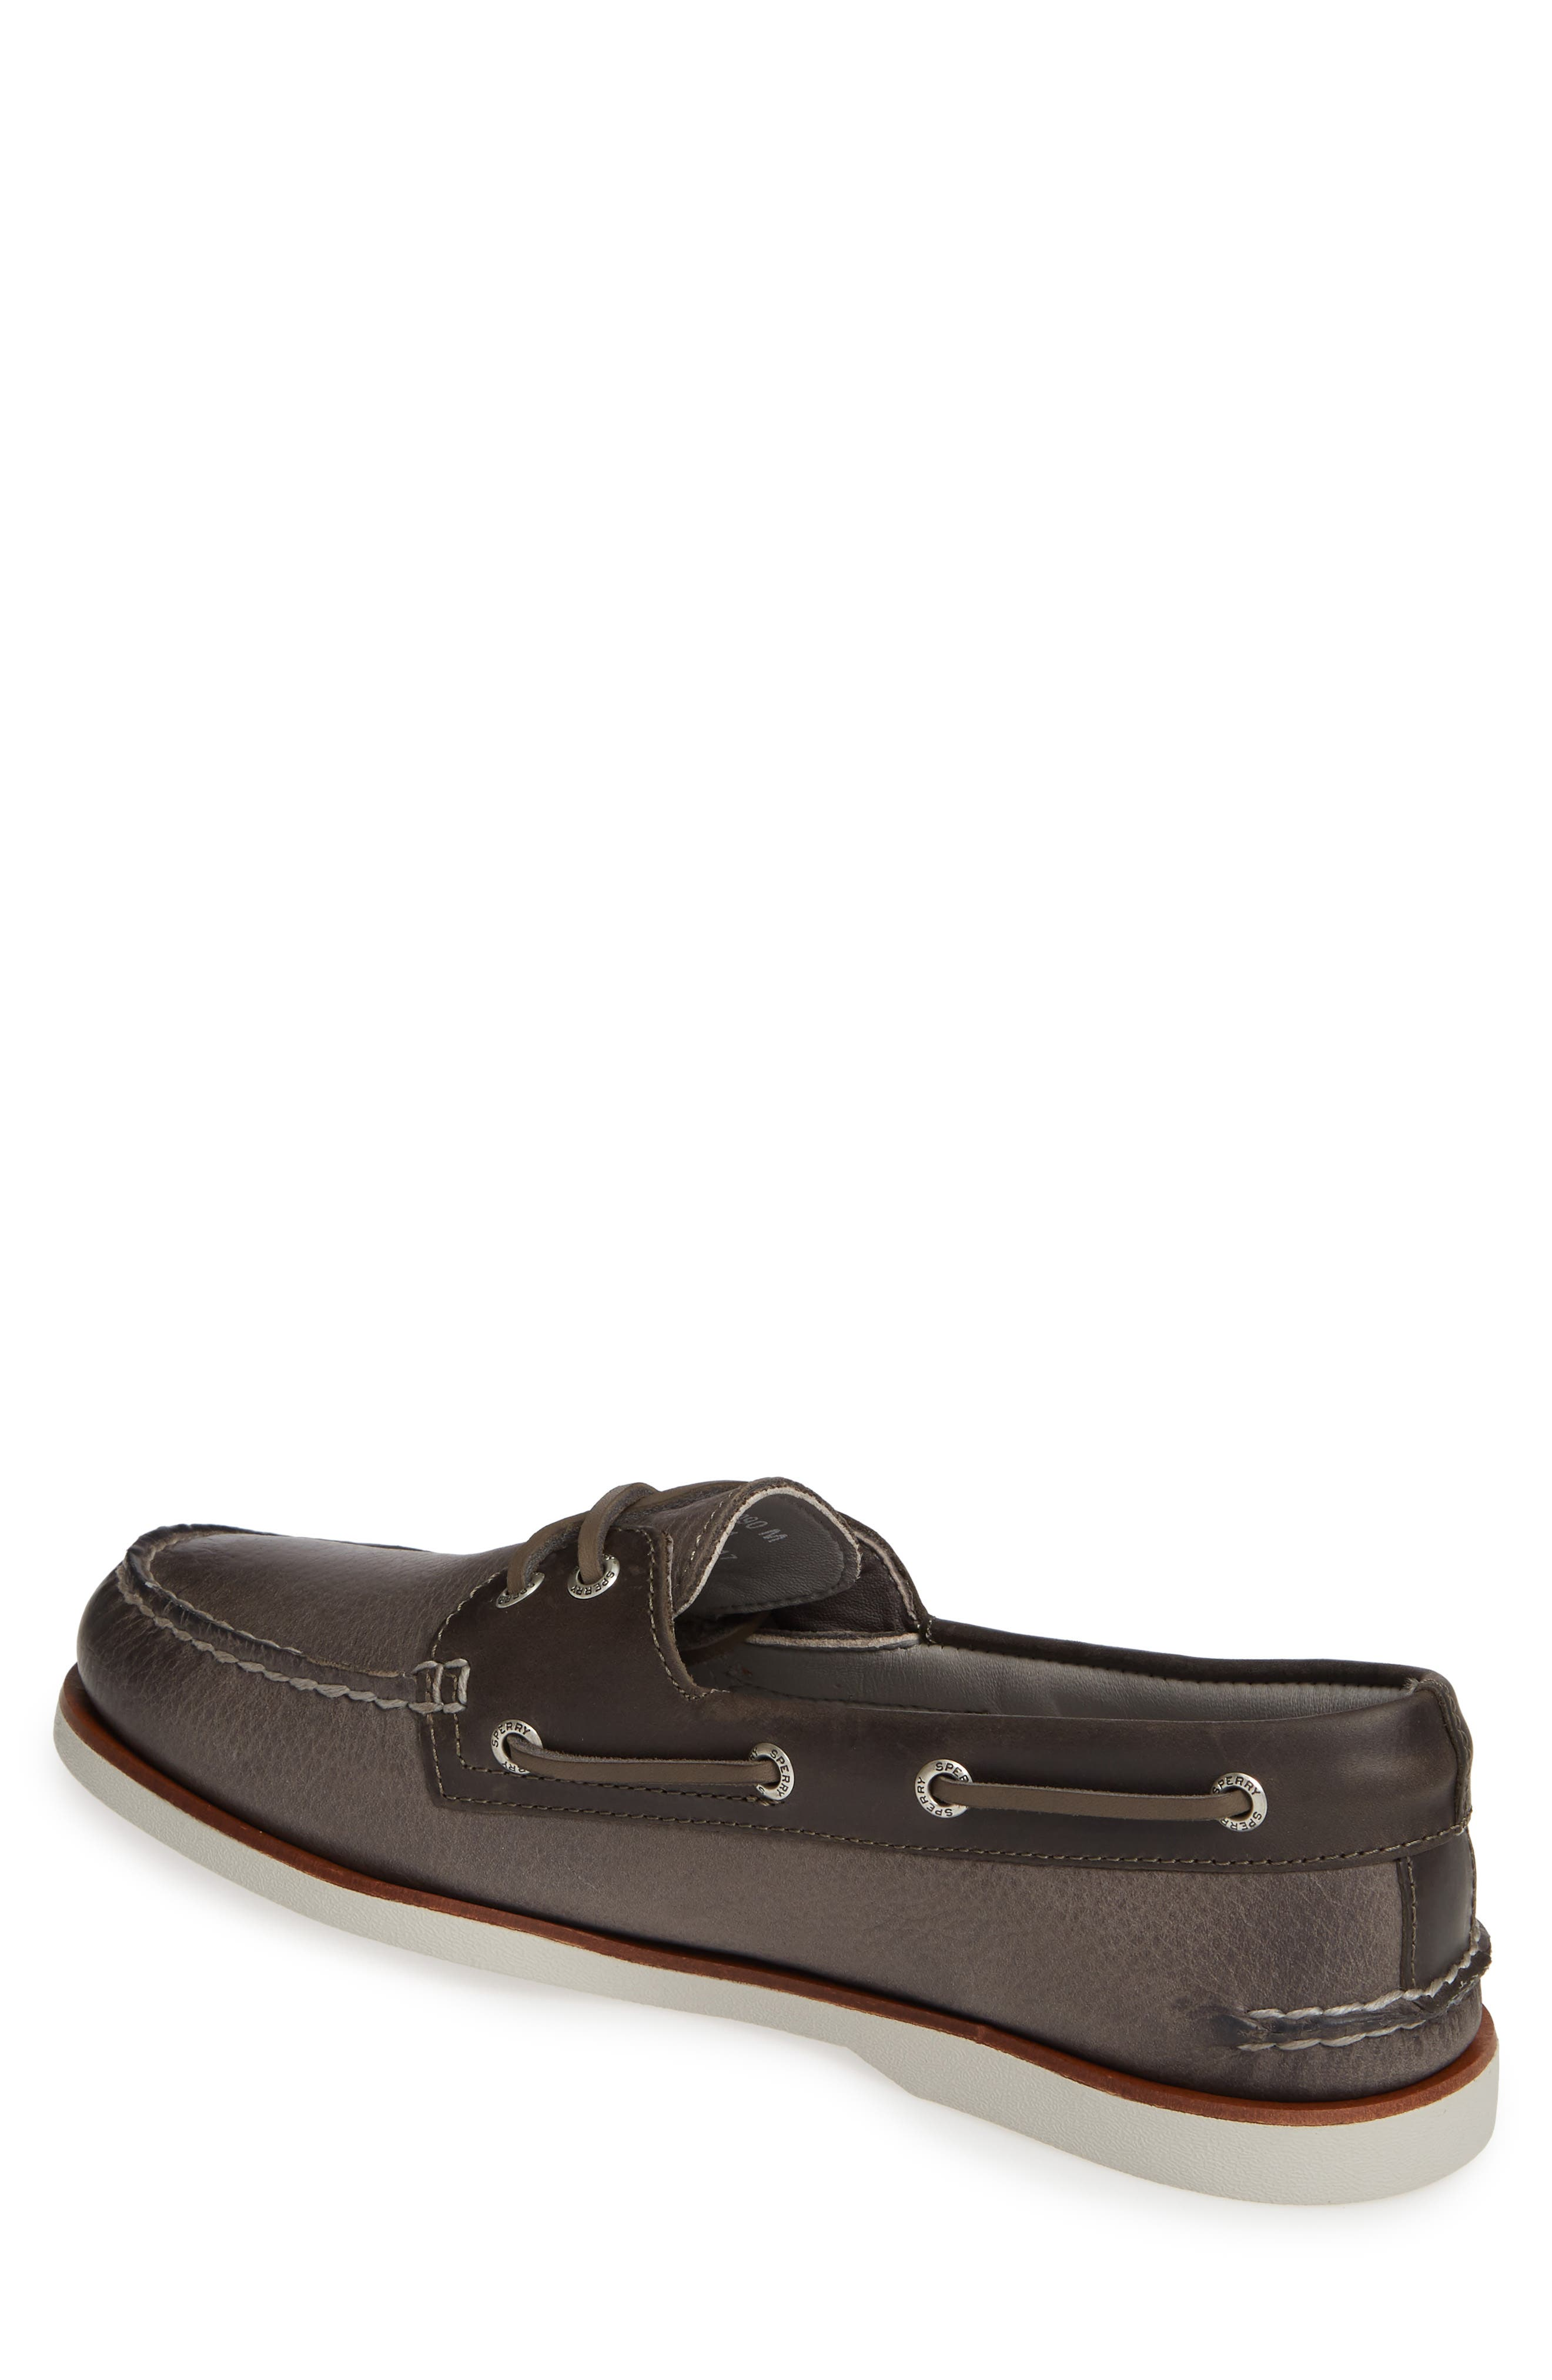 SPERRY, Authentic Original Gold Rivinton Boat Shoe, Alternate thumbnail 2, color, GREY